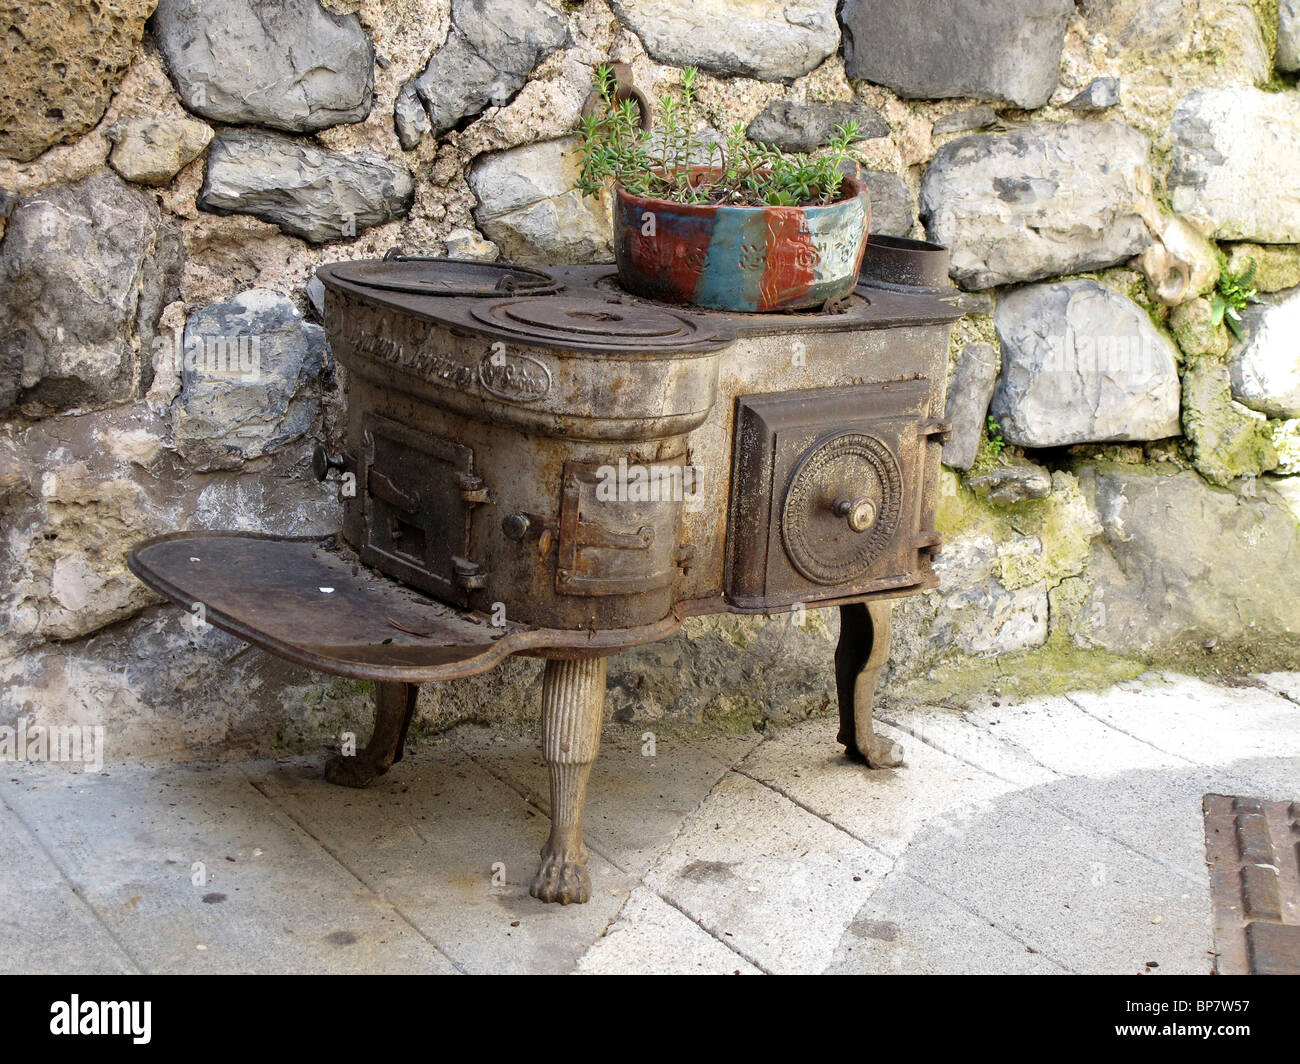 Rusty old stove - Stock Image